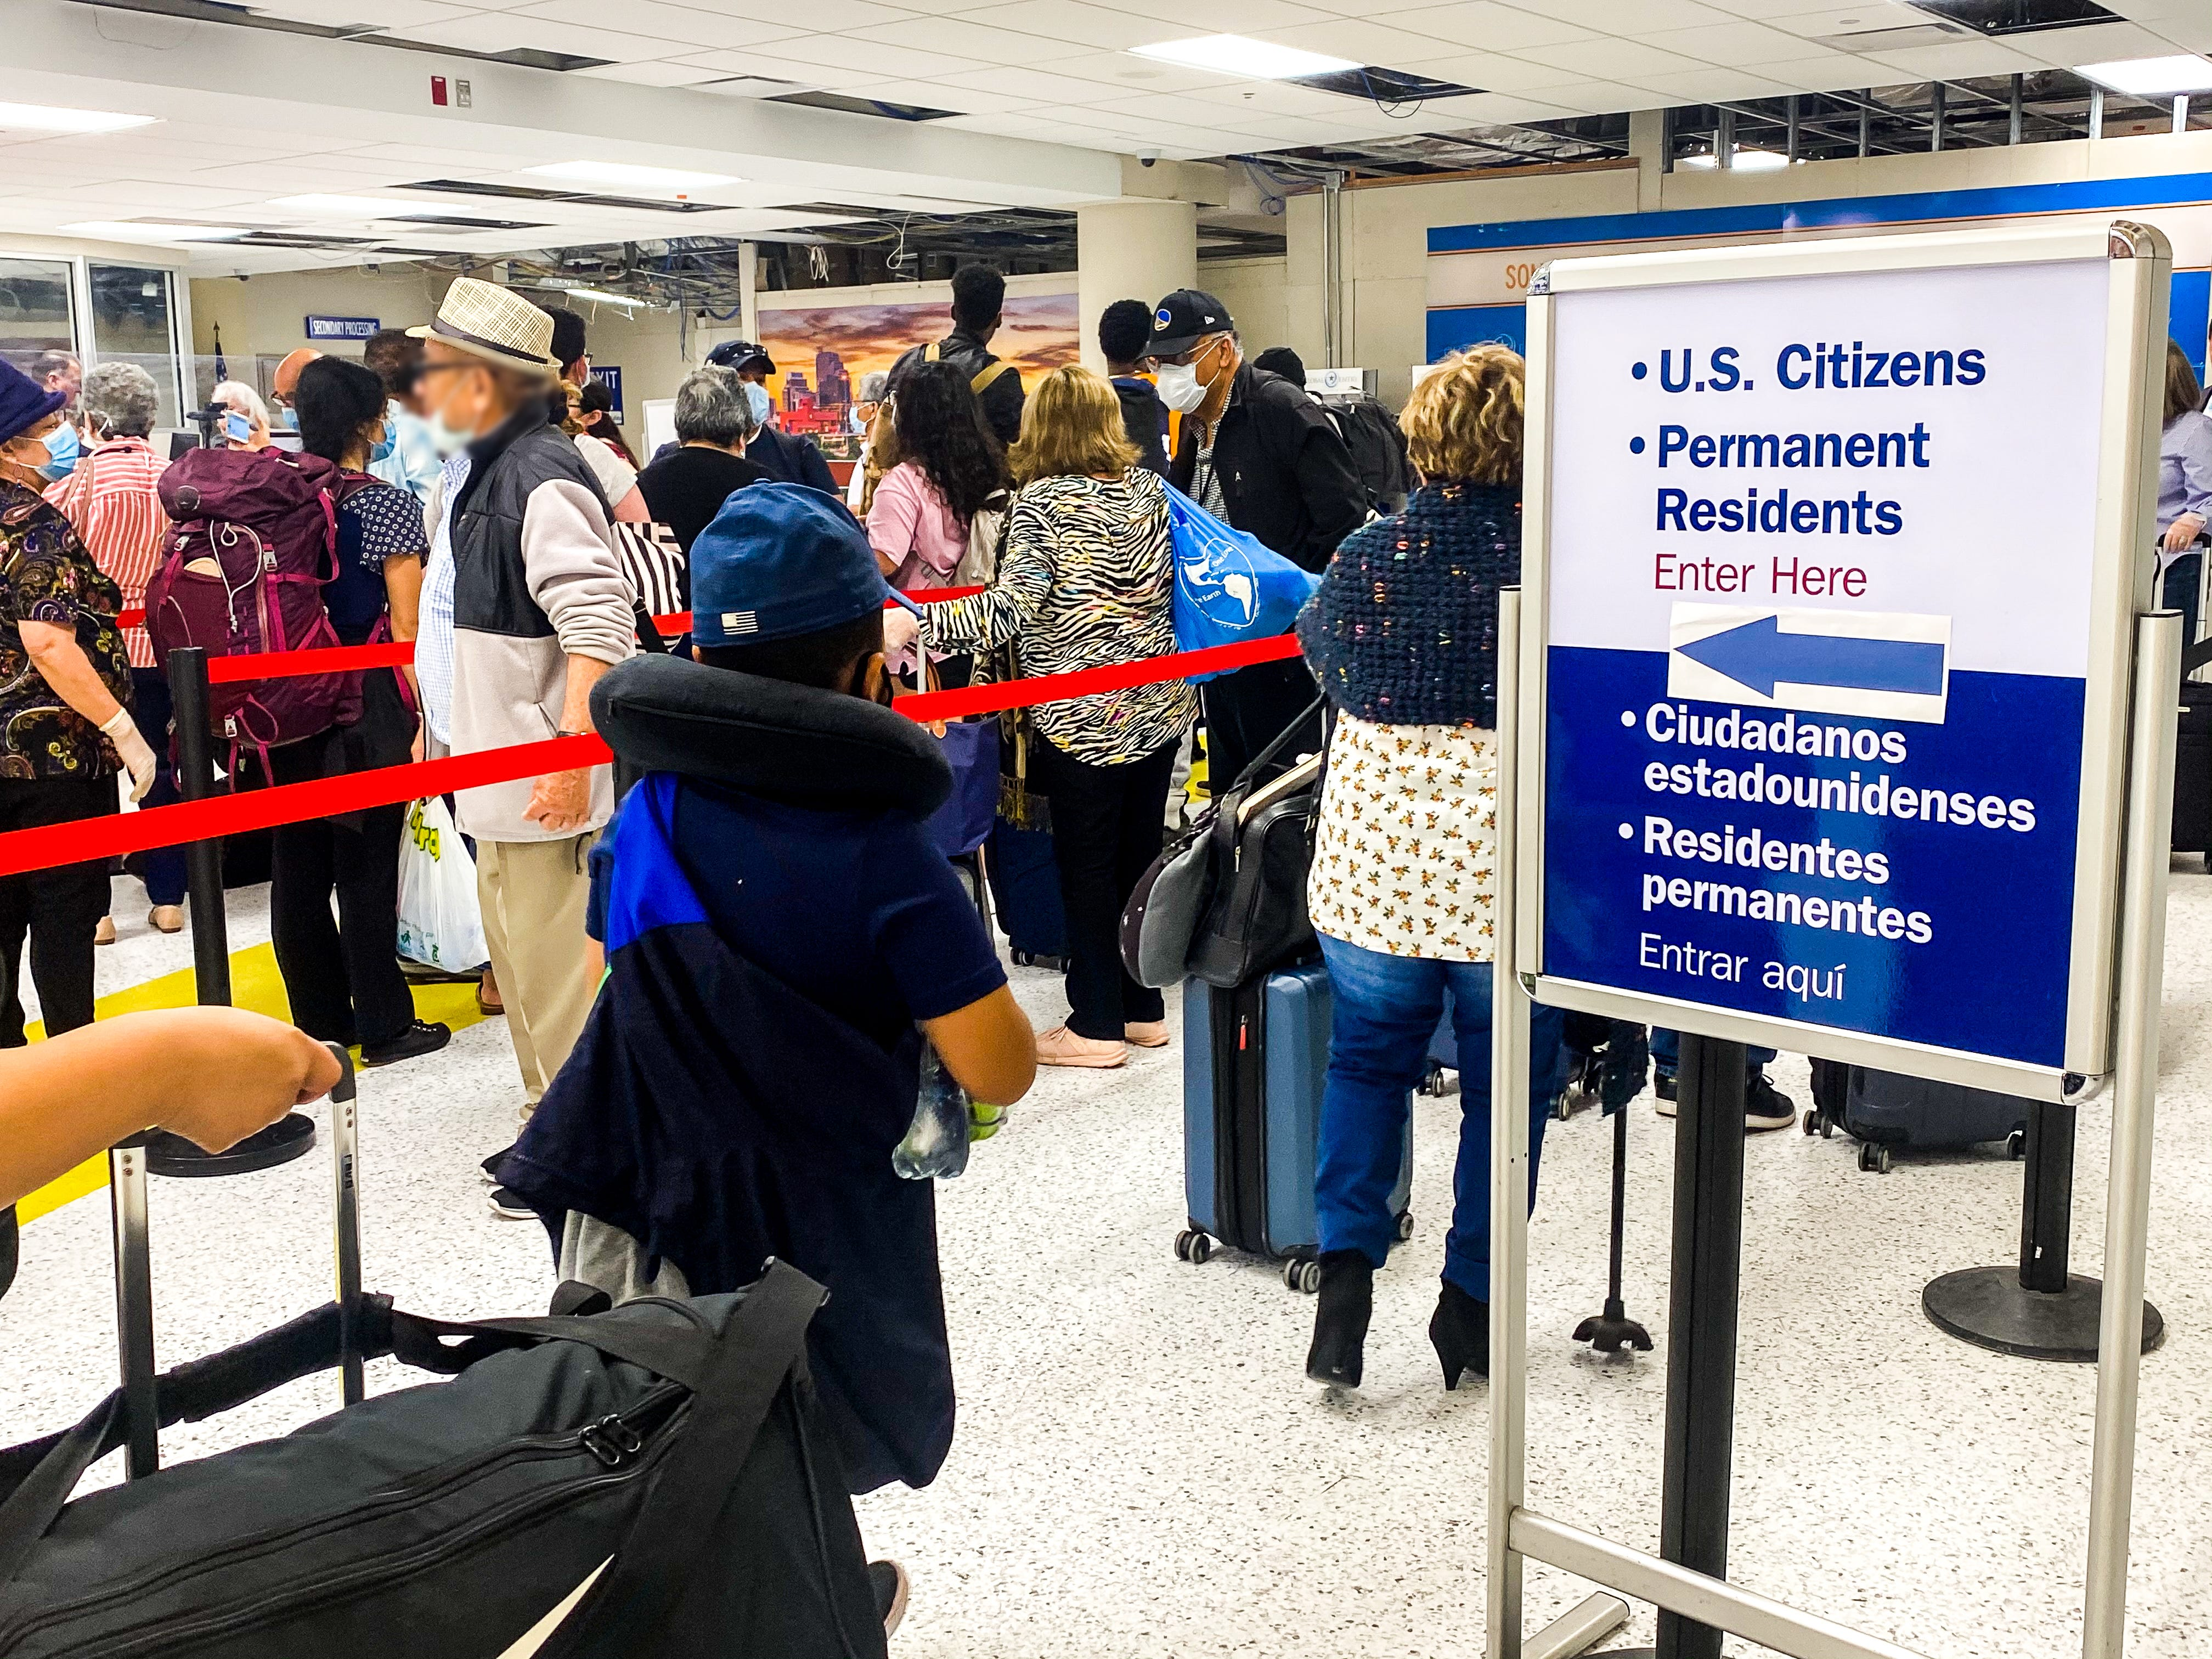 273 Americans stuck in Central America flown back to U.S. on ICE deportation flights